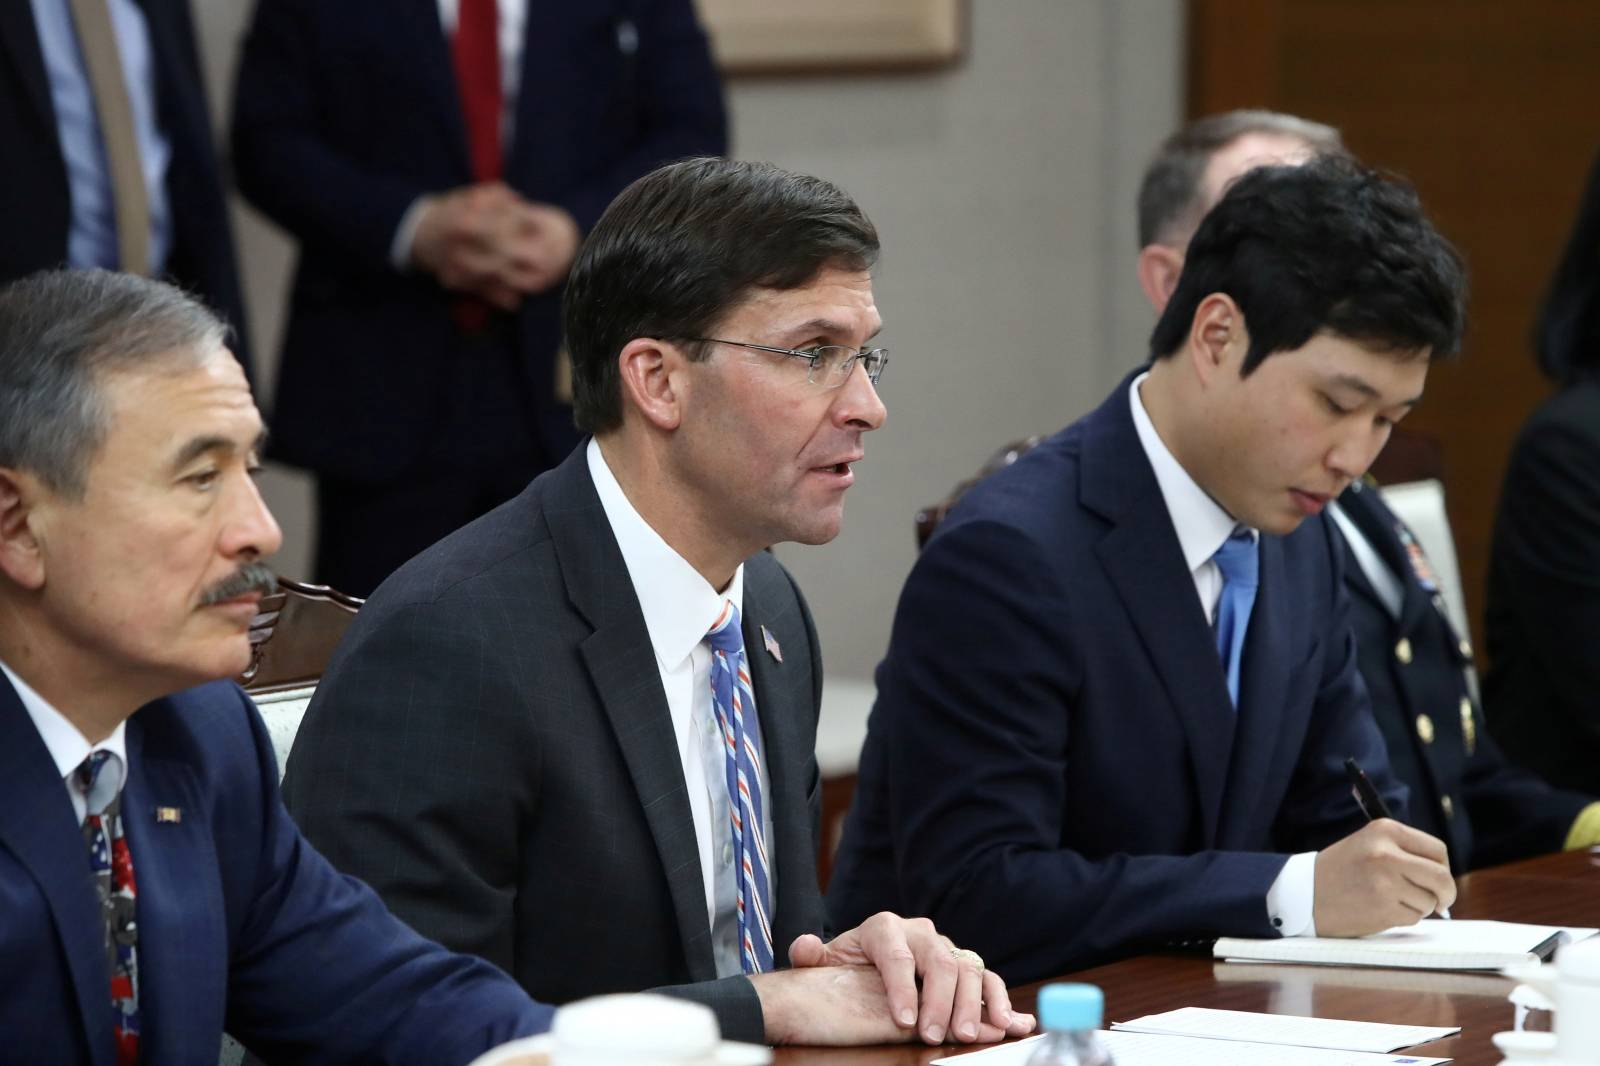 U.S. Defense Secretary Mark Esper talks to South Korean Defense Minister Jeong Kyeong-doo during their meeting in Seoul